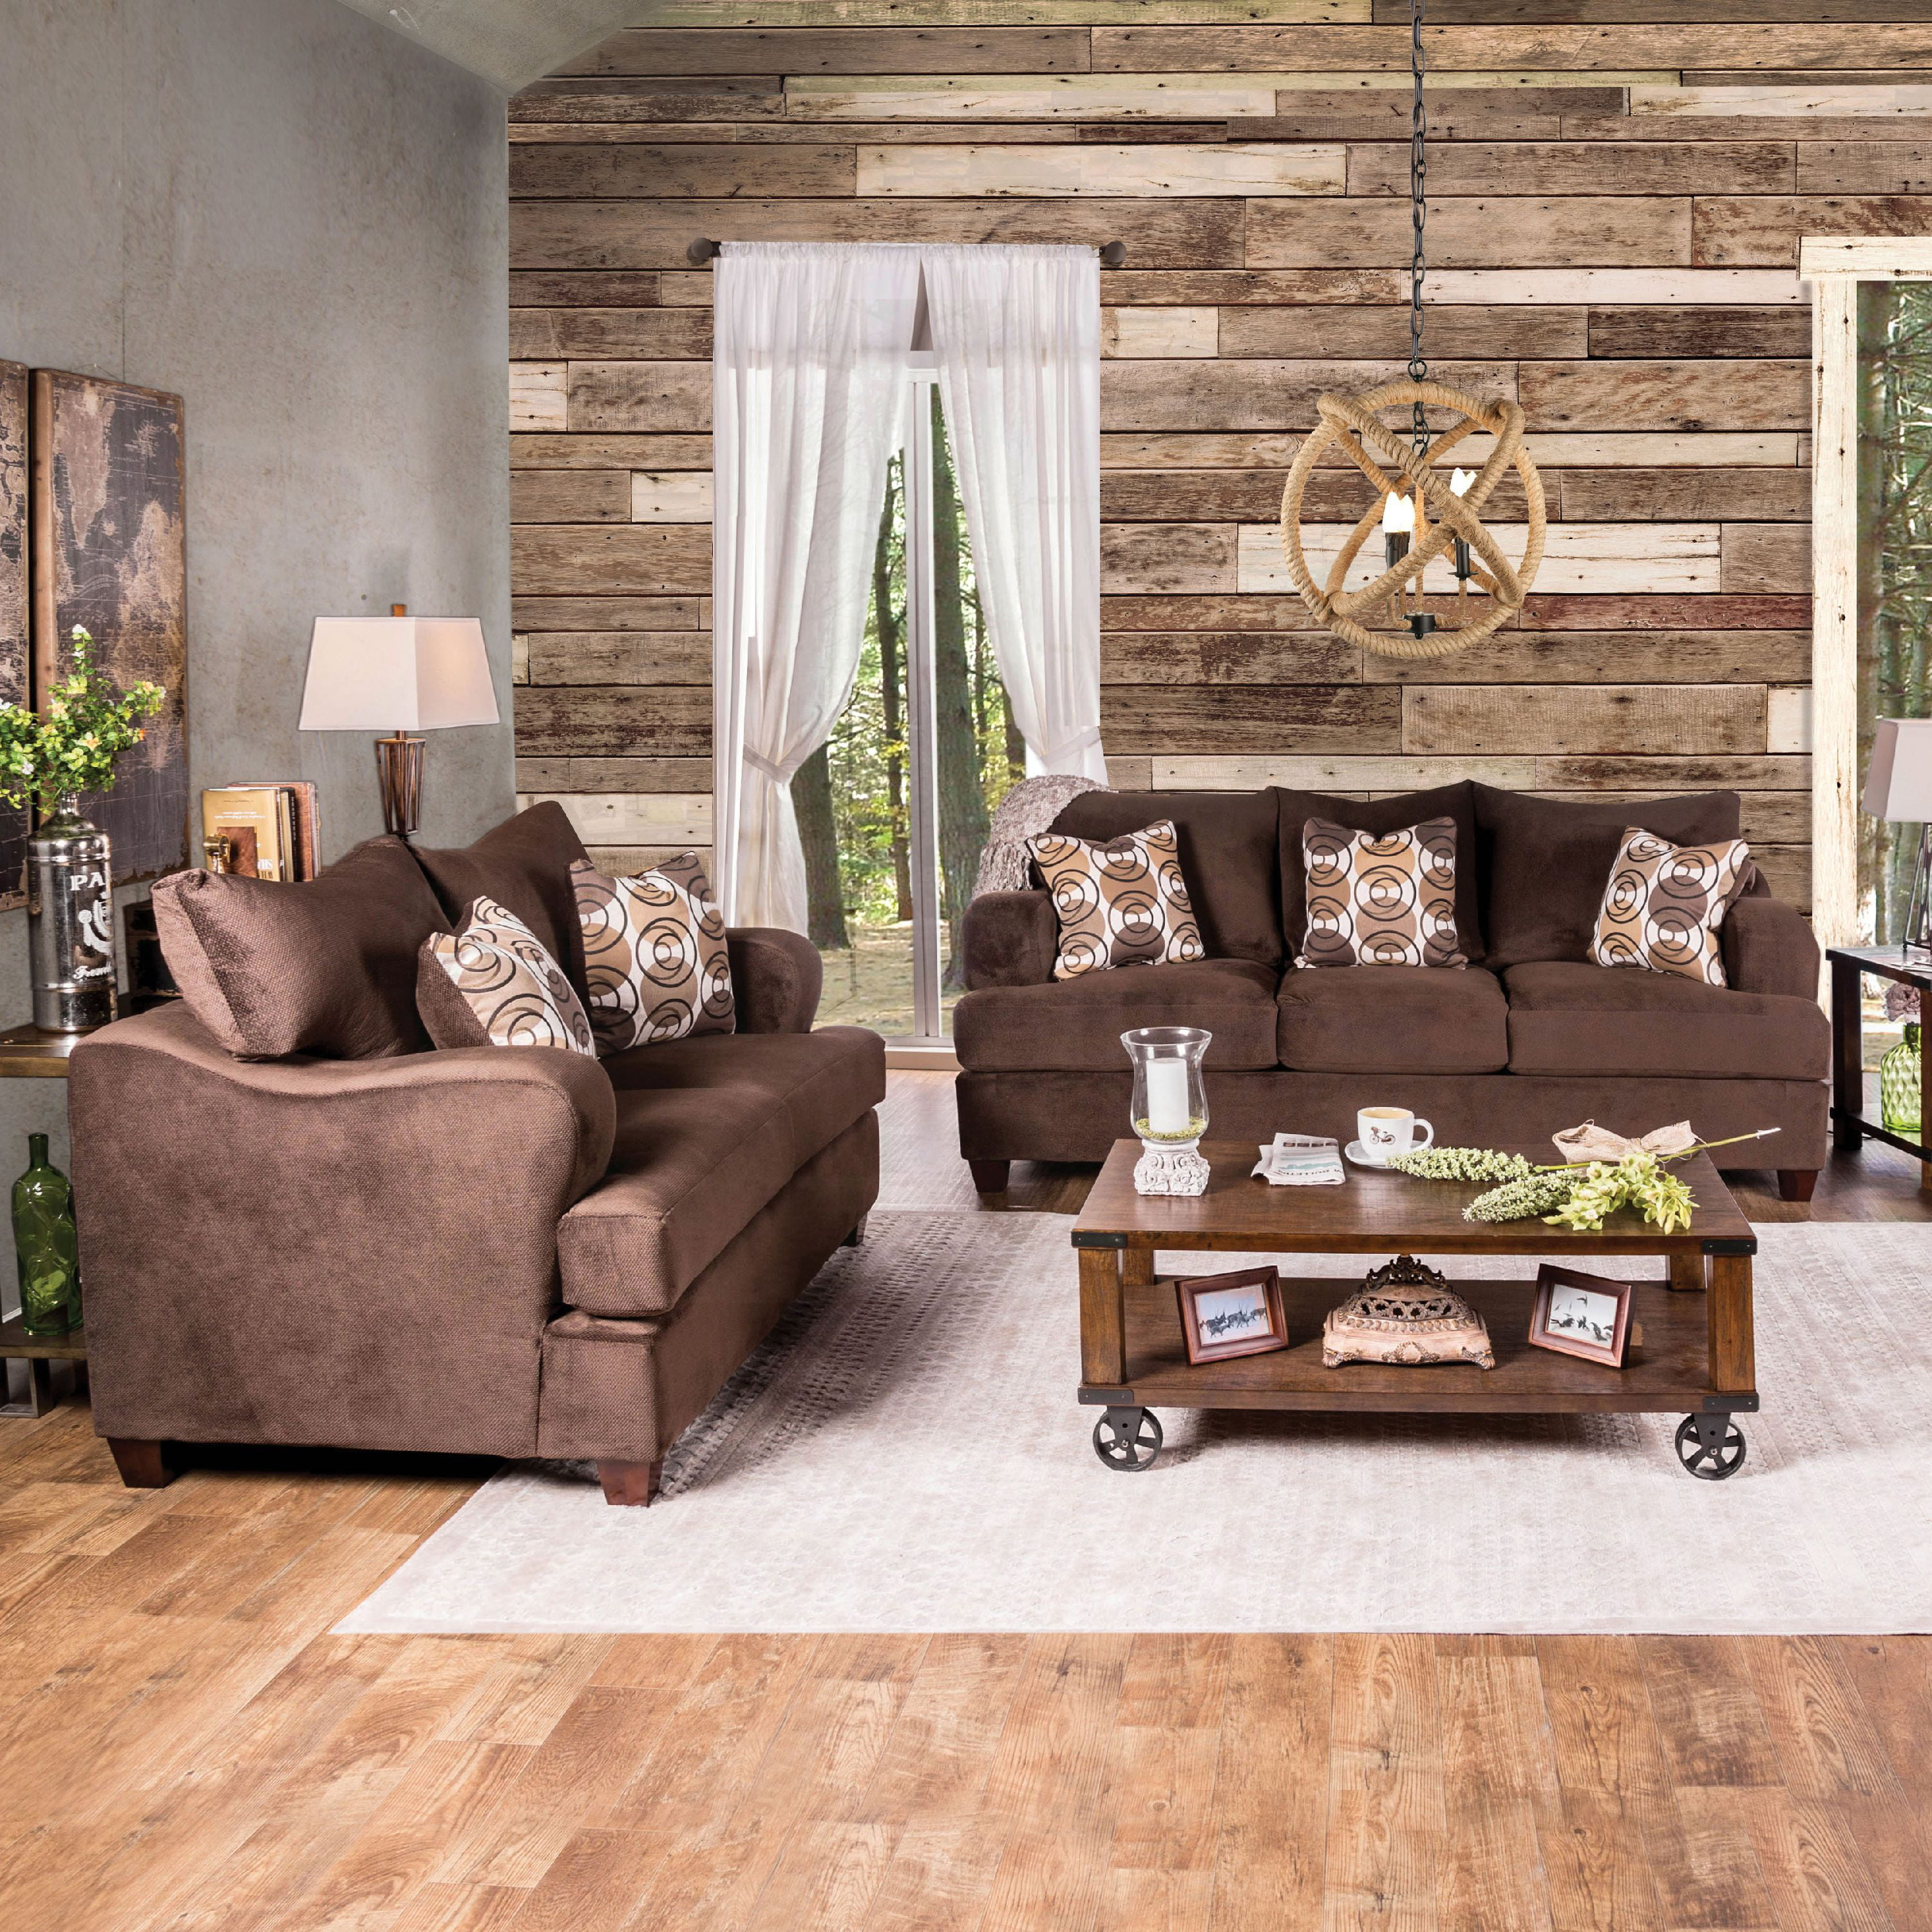 Furniture of America Howard Transitional 2-Piece Sofa Set, Chocolate by Furniture of America